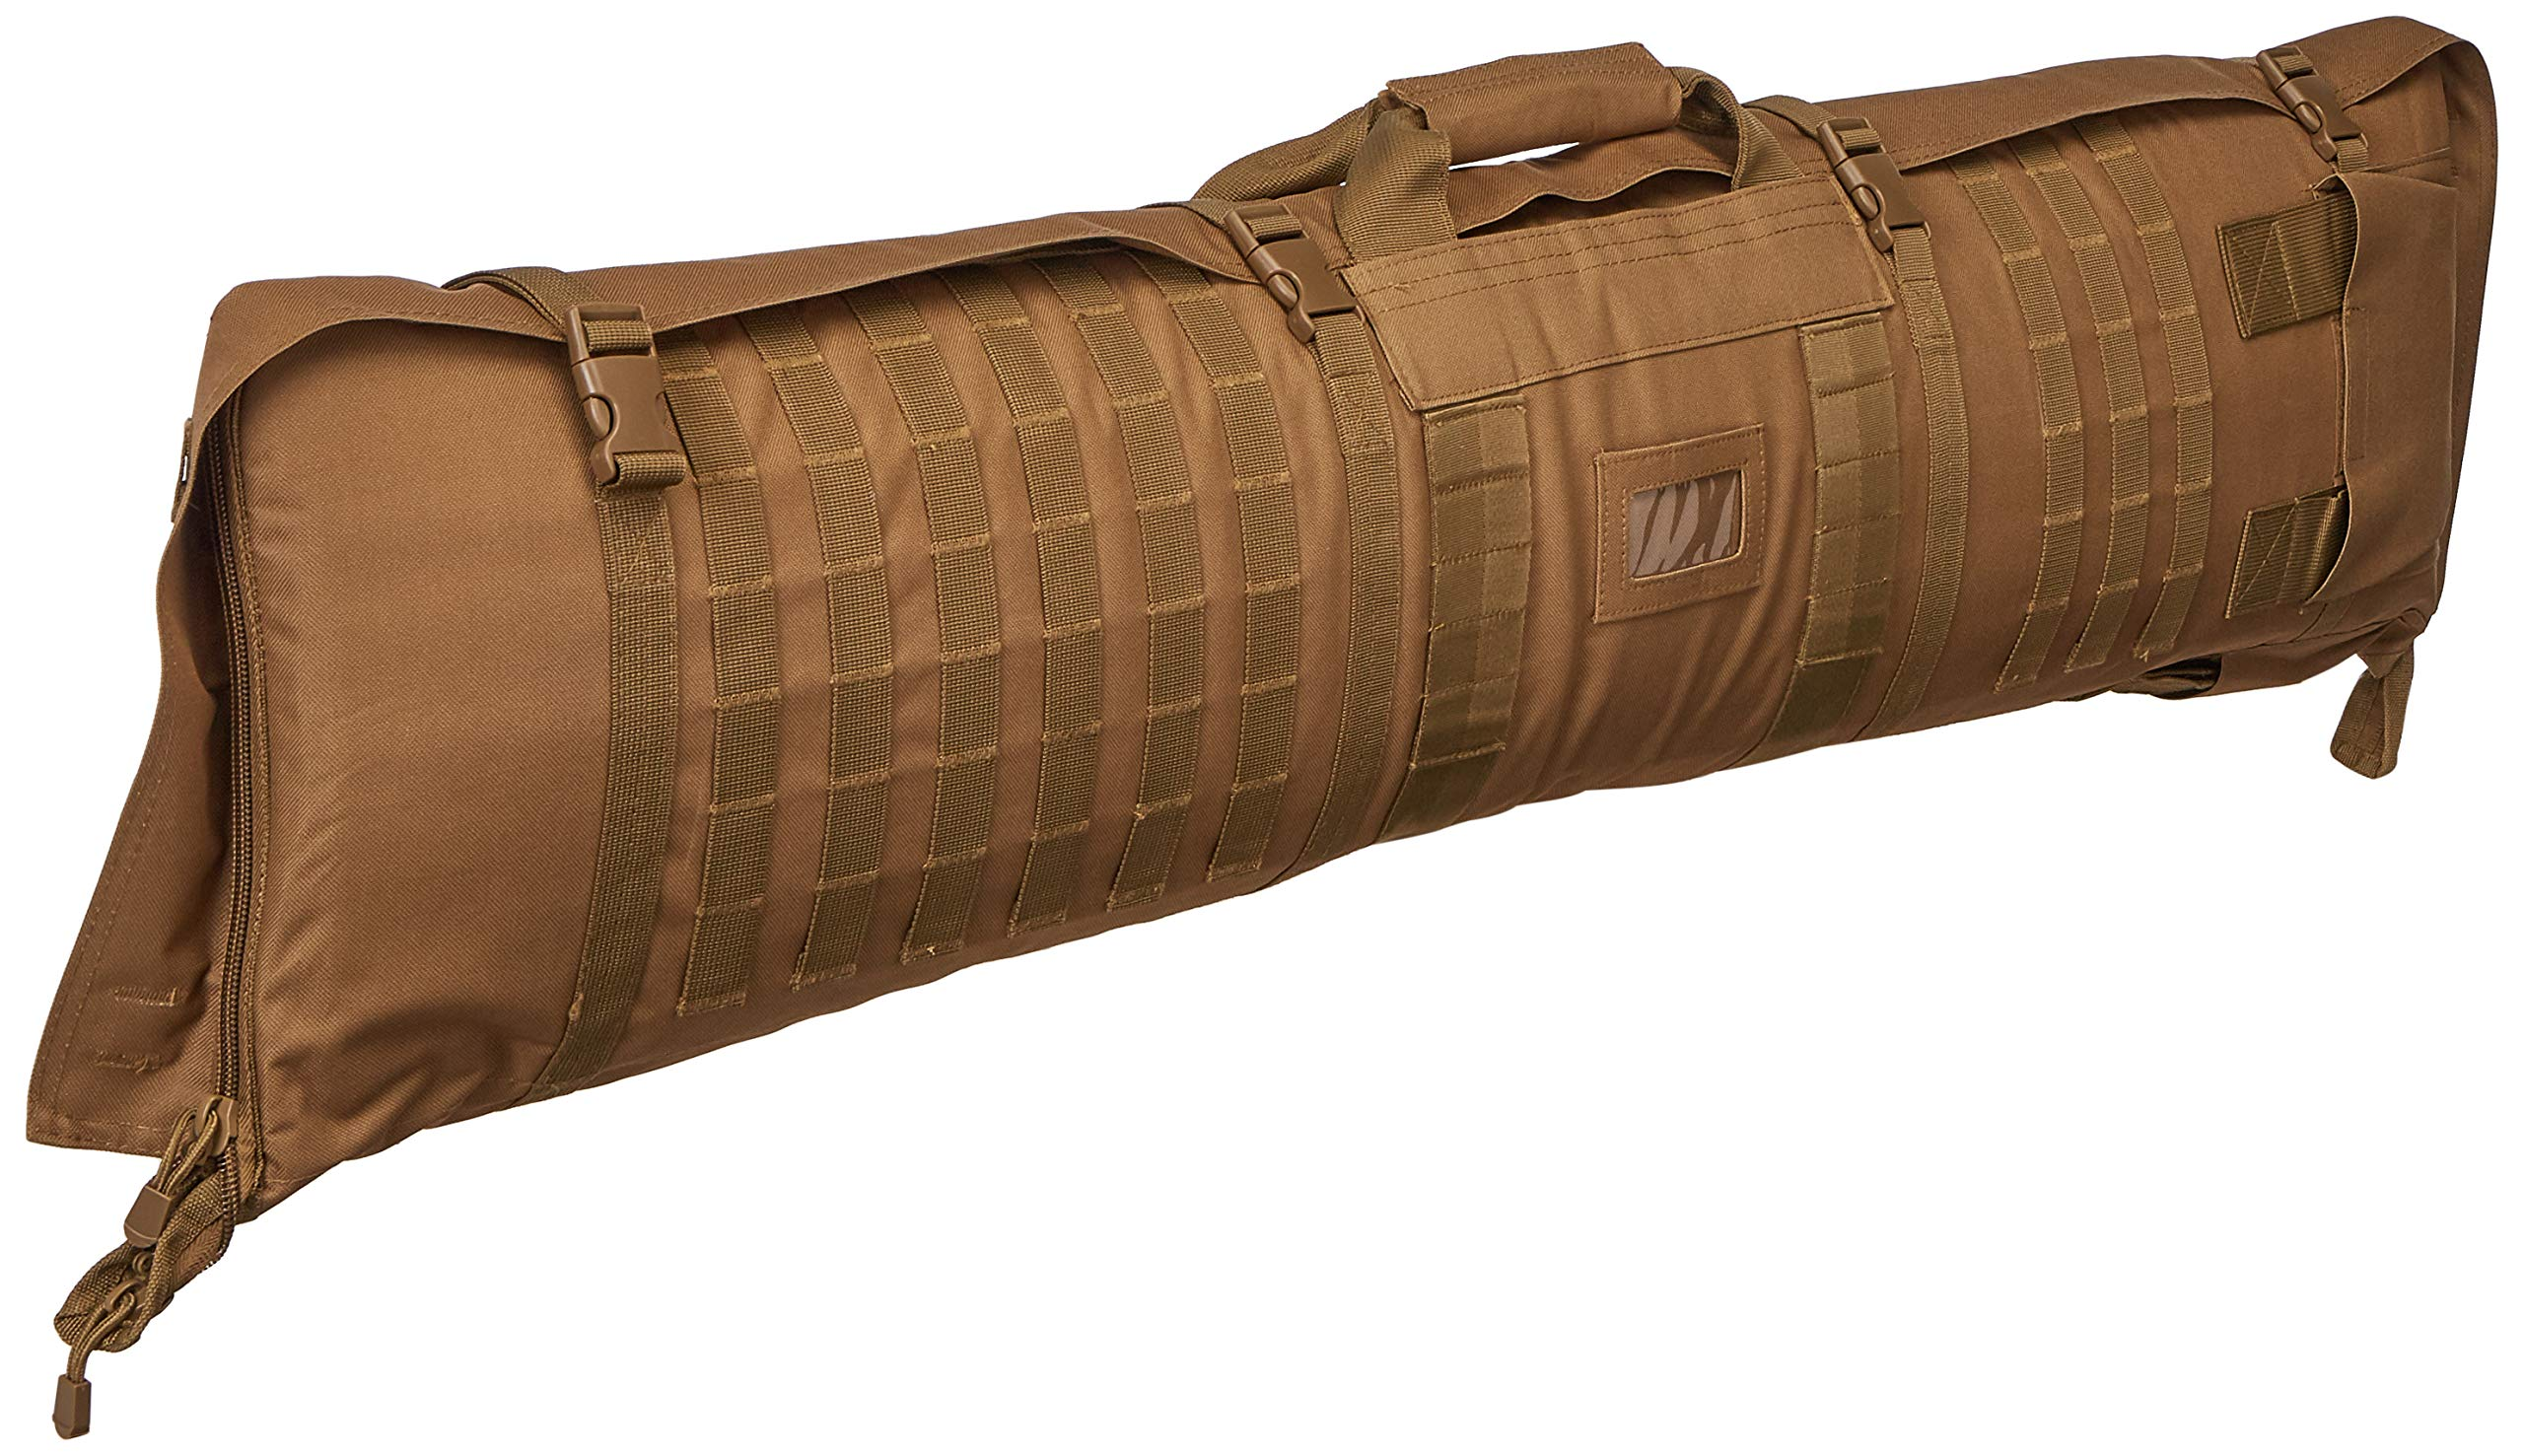 VISM by NcStar Gun Case Rifle Case/Shooting Mat/Tan (CVSM2913T) by NcSTAR